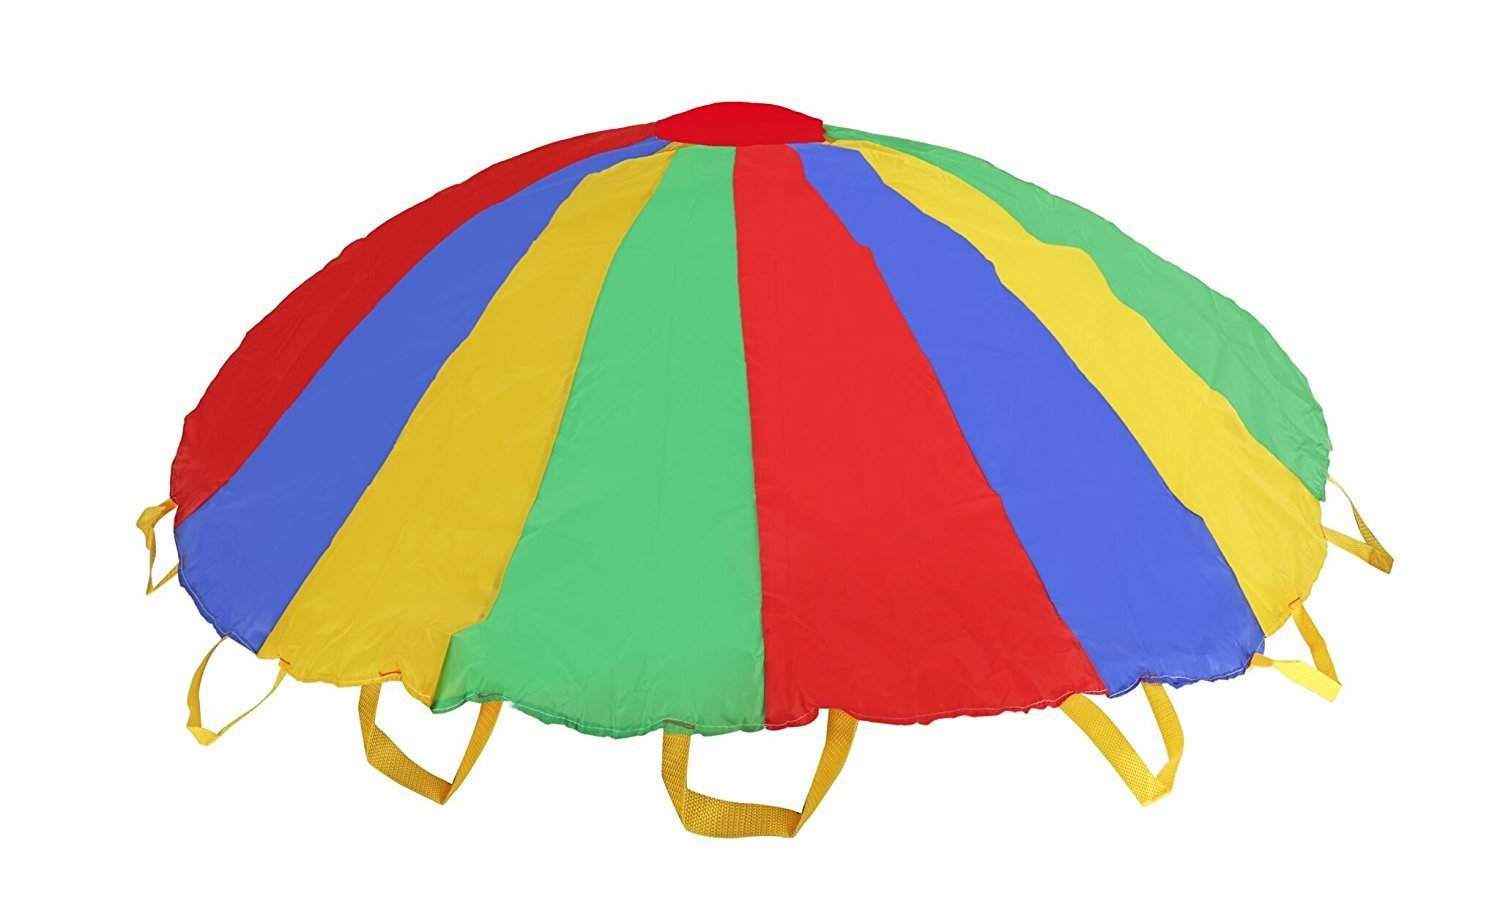 Parachute   5 Feet Multi-color Design Parachute with Handles For Kids to Hold on While Playing